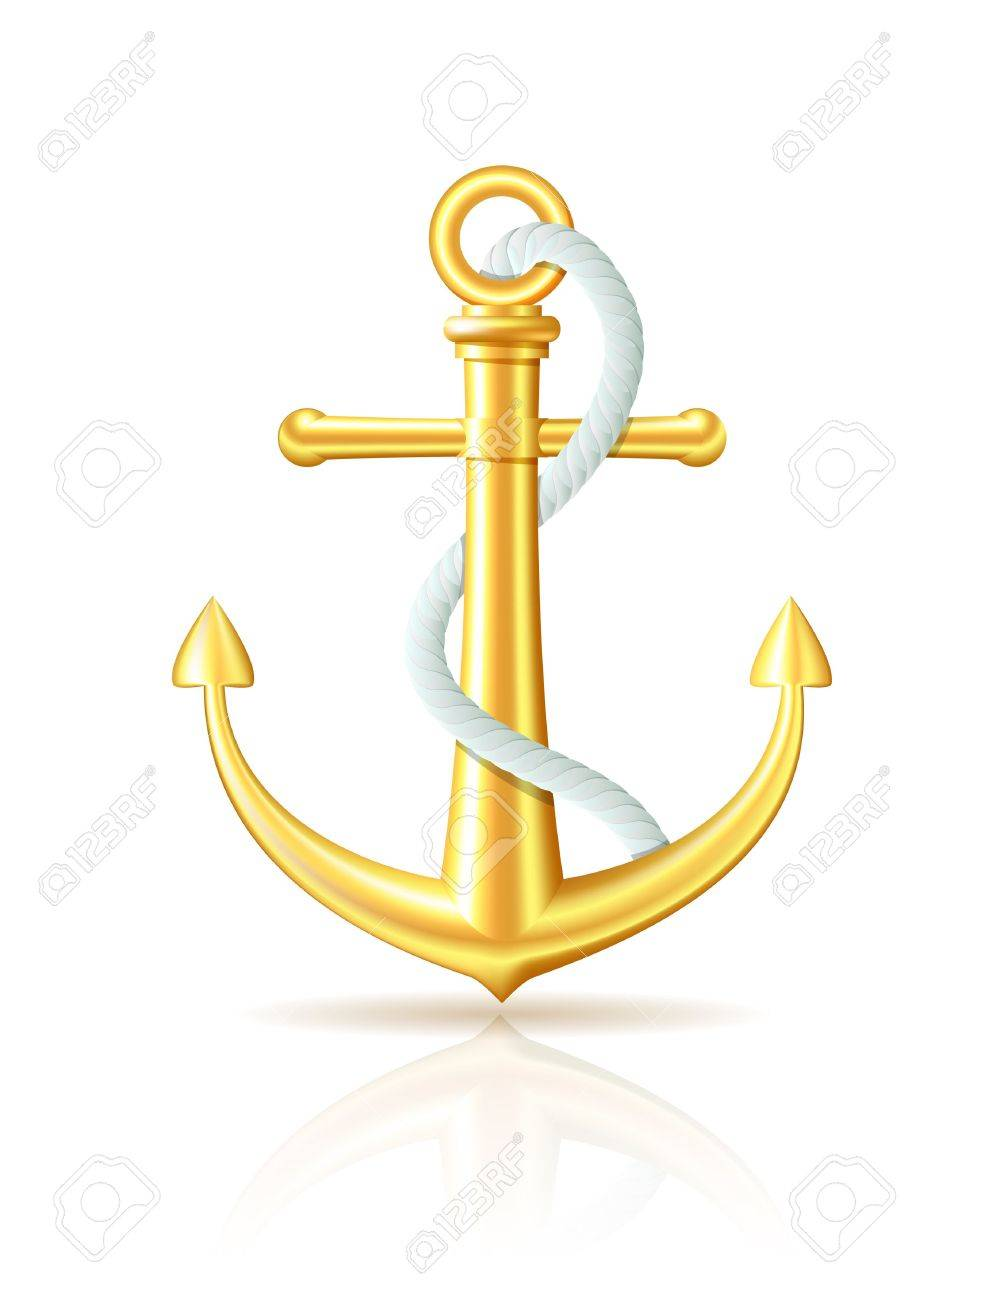 Gold Anchor With Rope On White Background Stock Vector